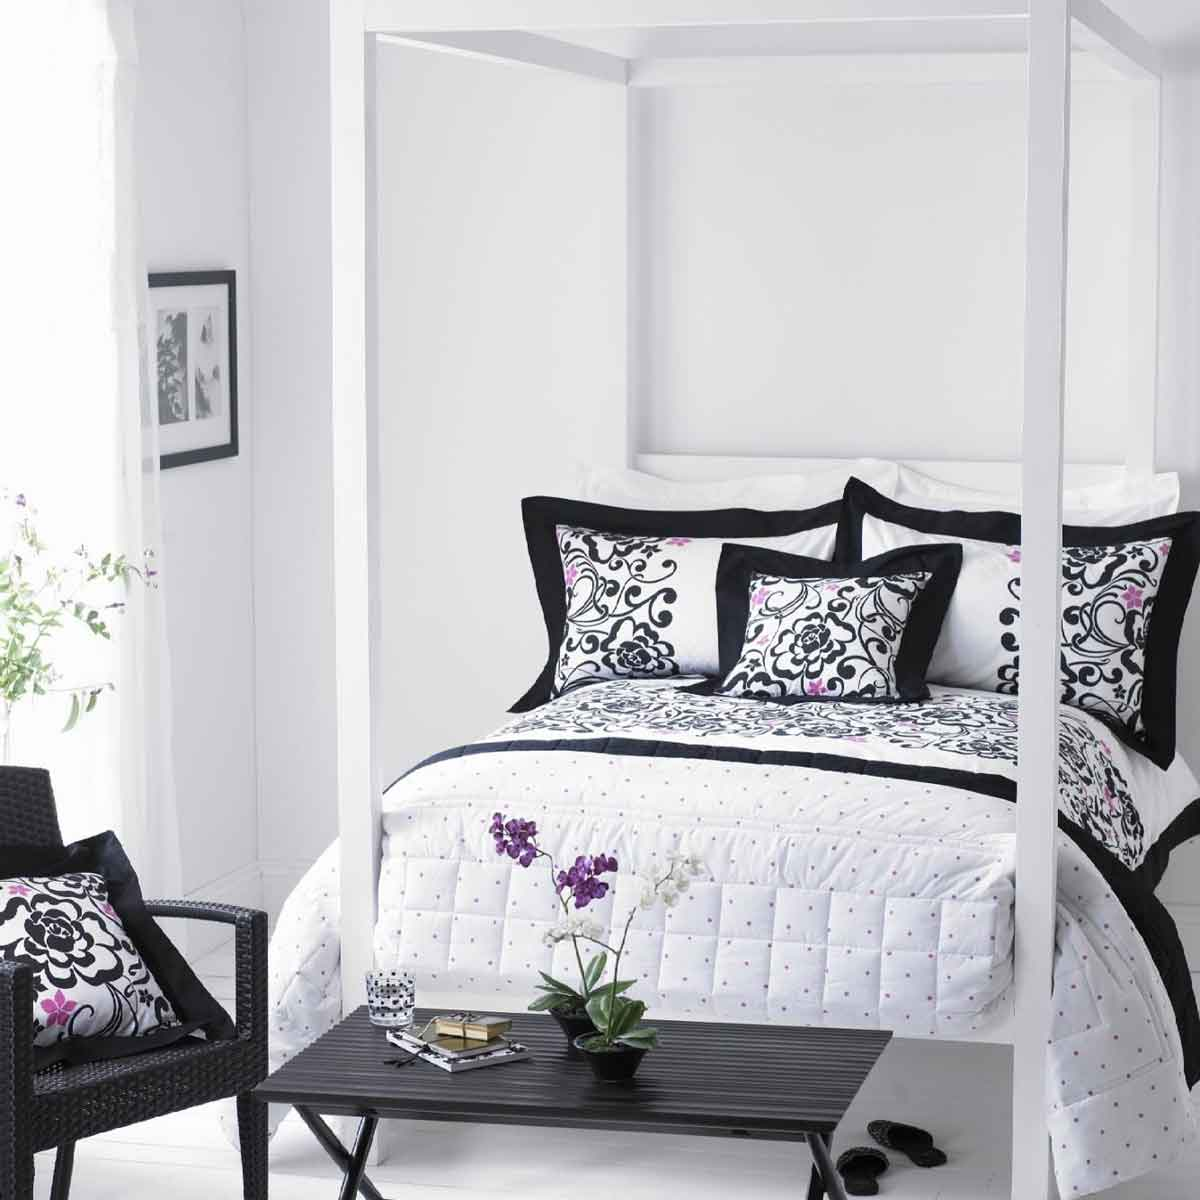 Bedroom Wall Decor Black And White : Modern black and white bedroom ideas